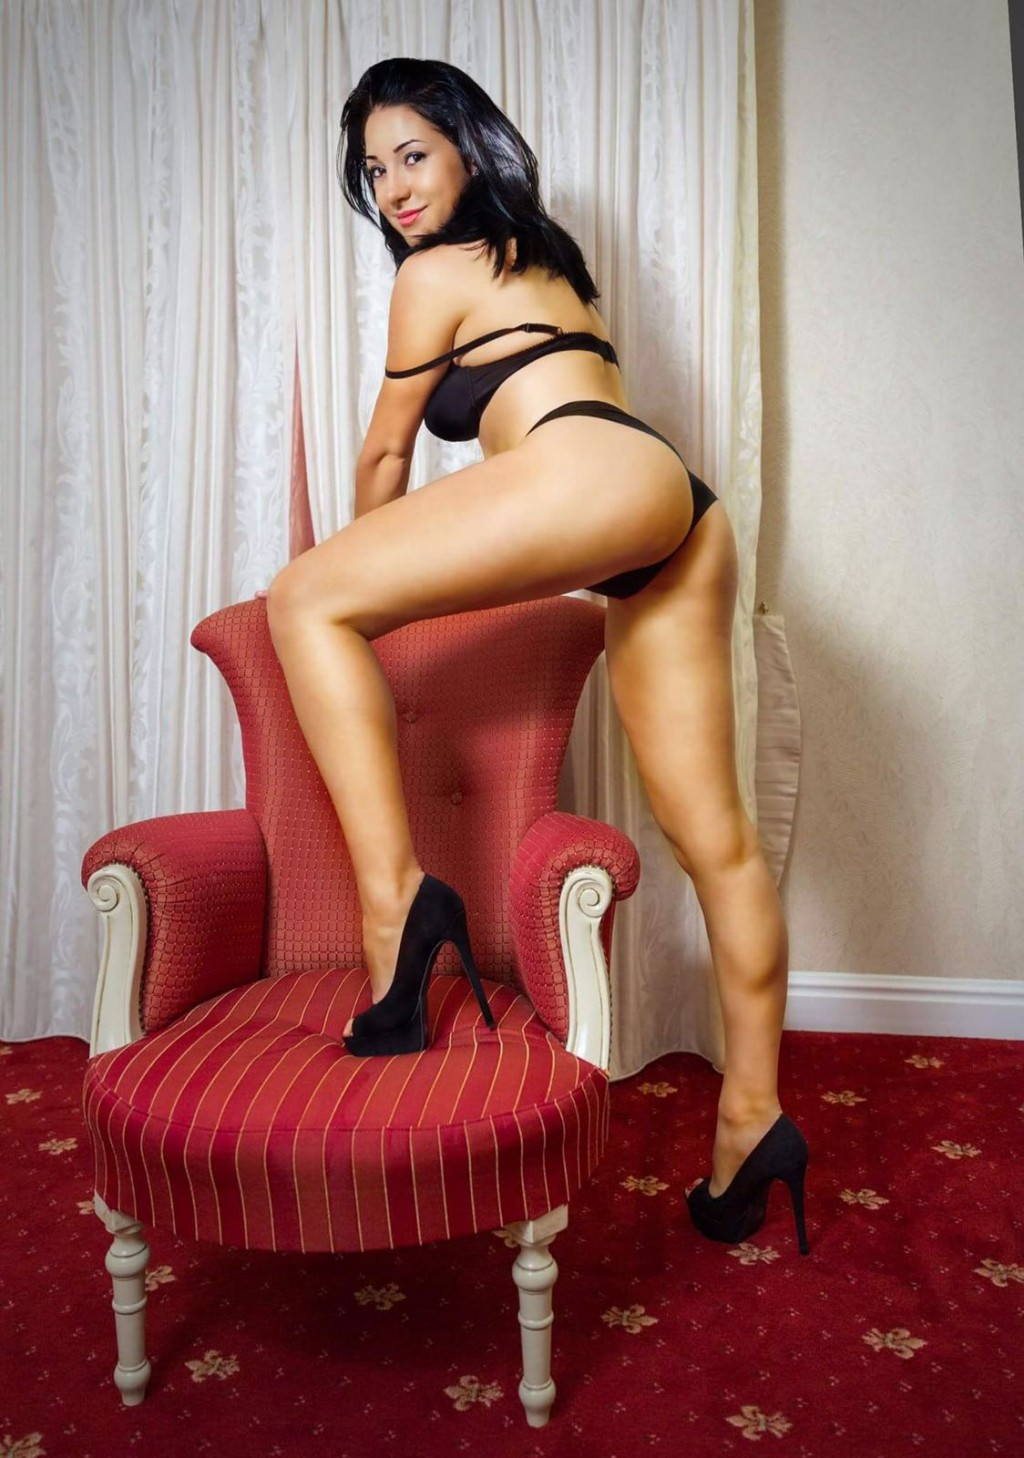 escort norway suomalainen seksi chat